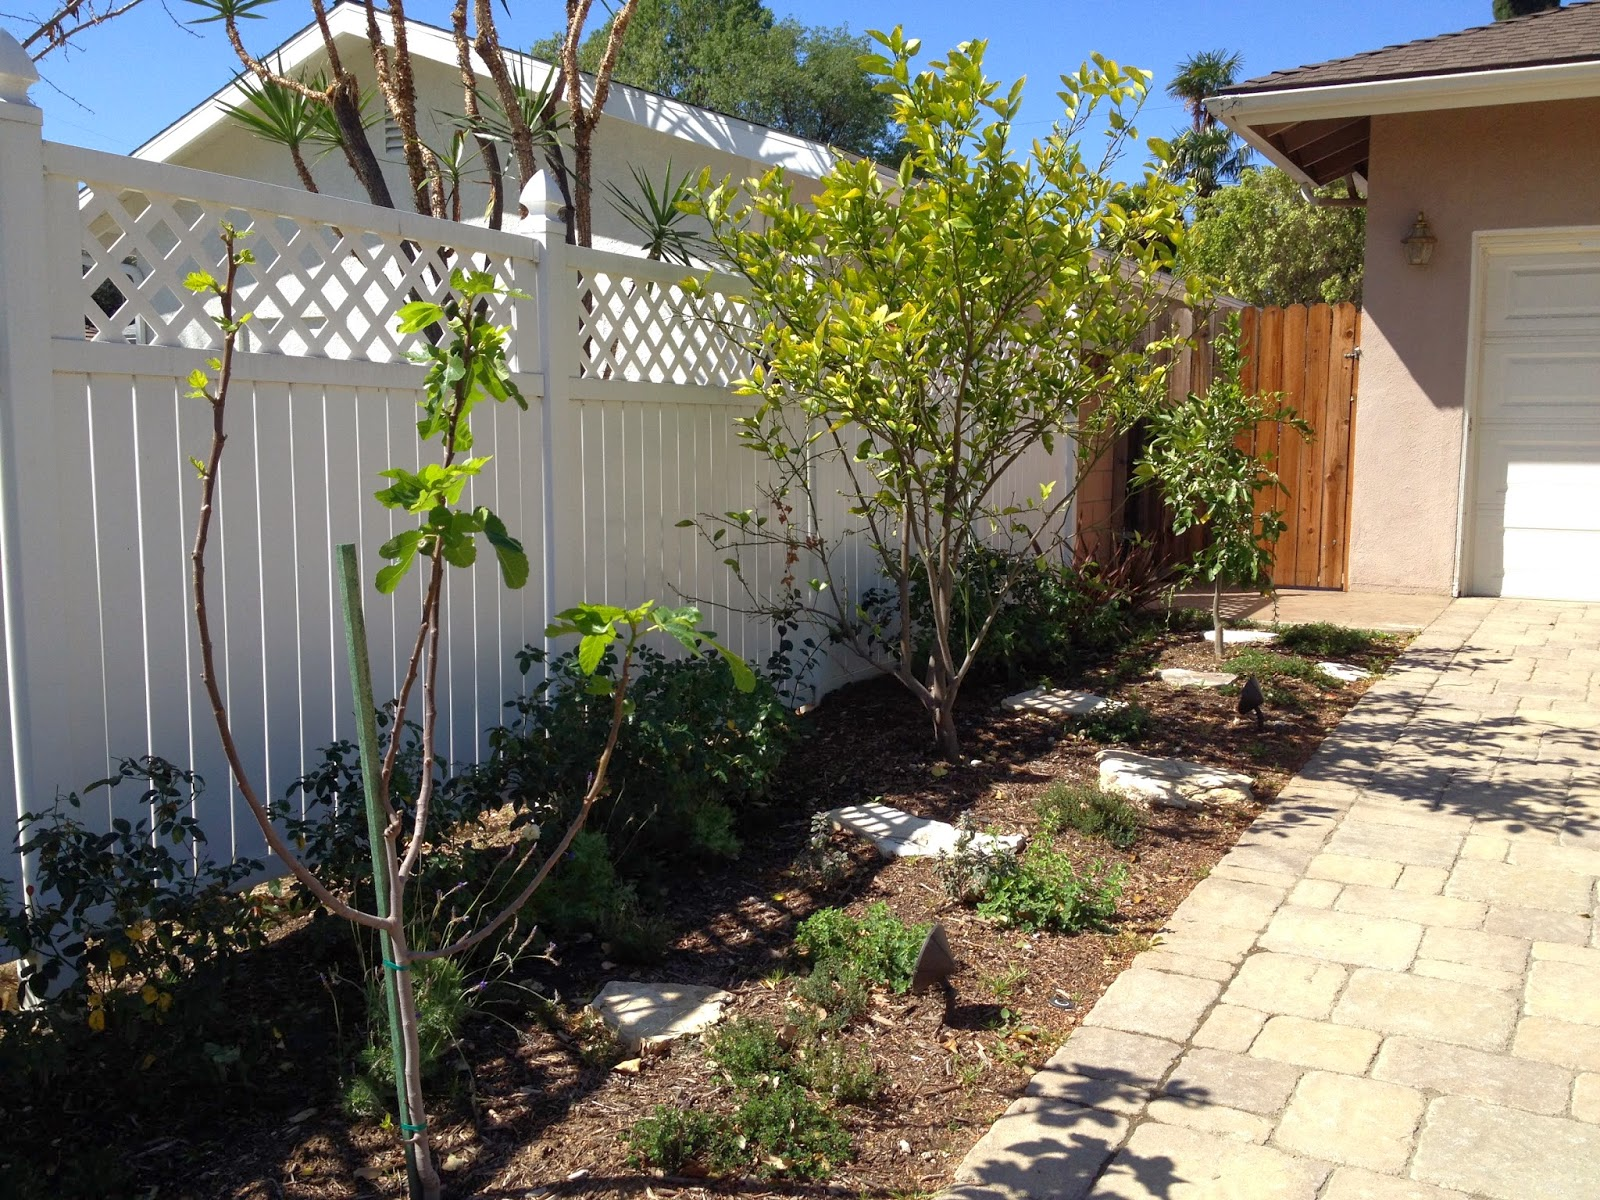 How Does My Garden Grow?: Front Yard Fruit Trees - Spring ...